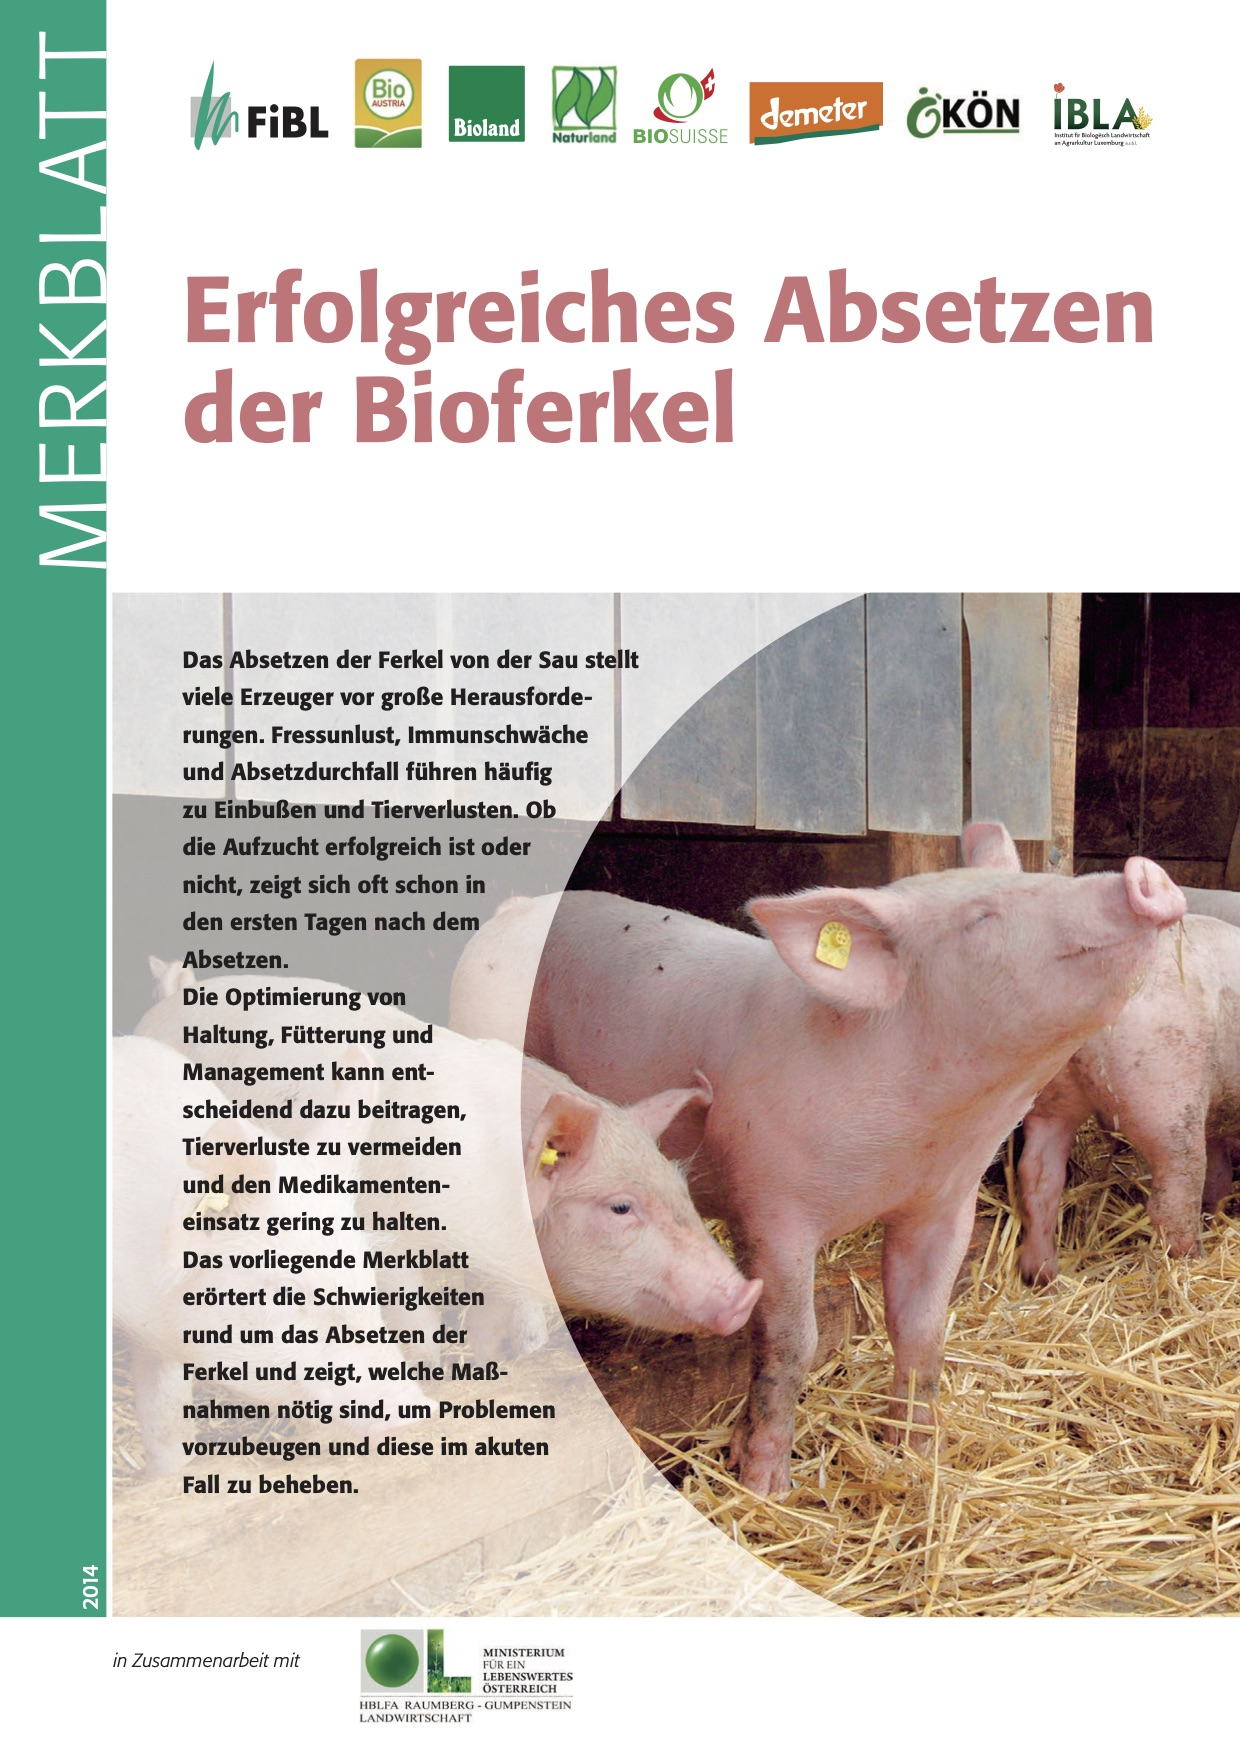 Successful weaning of organic piglets